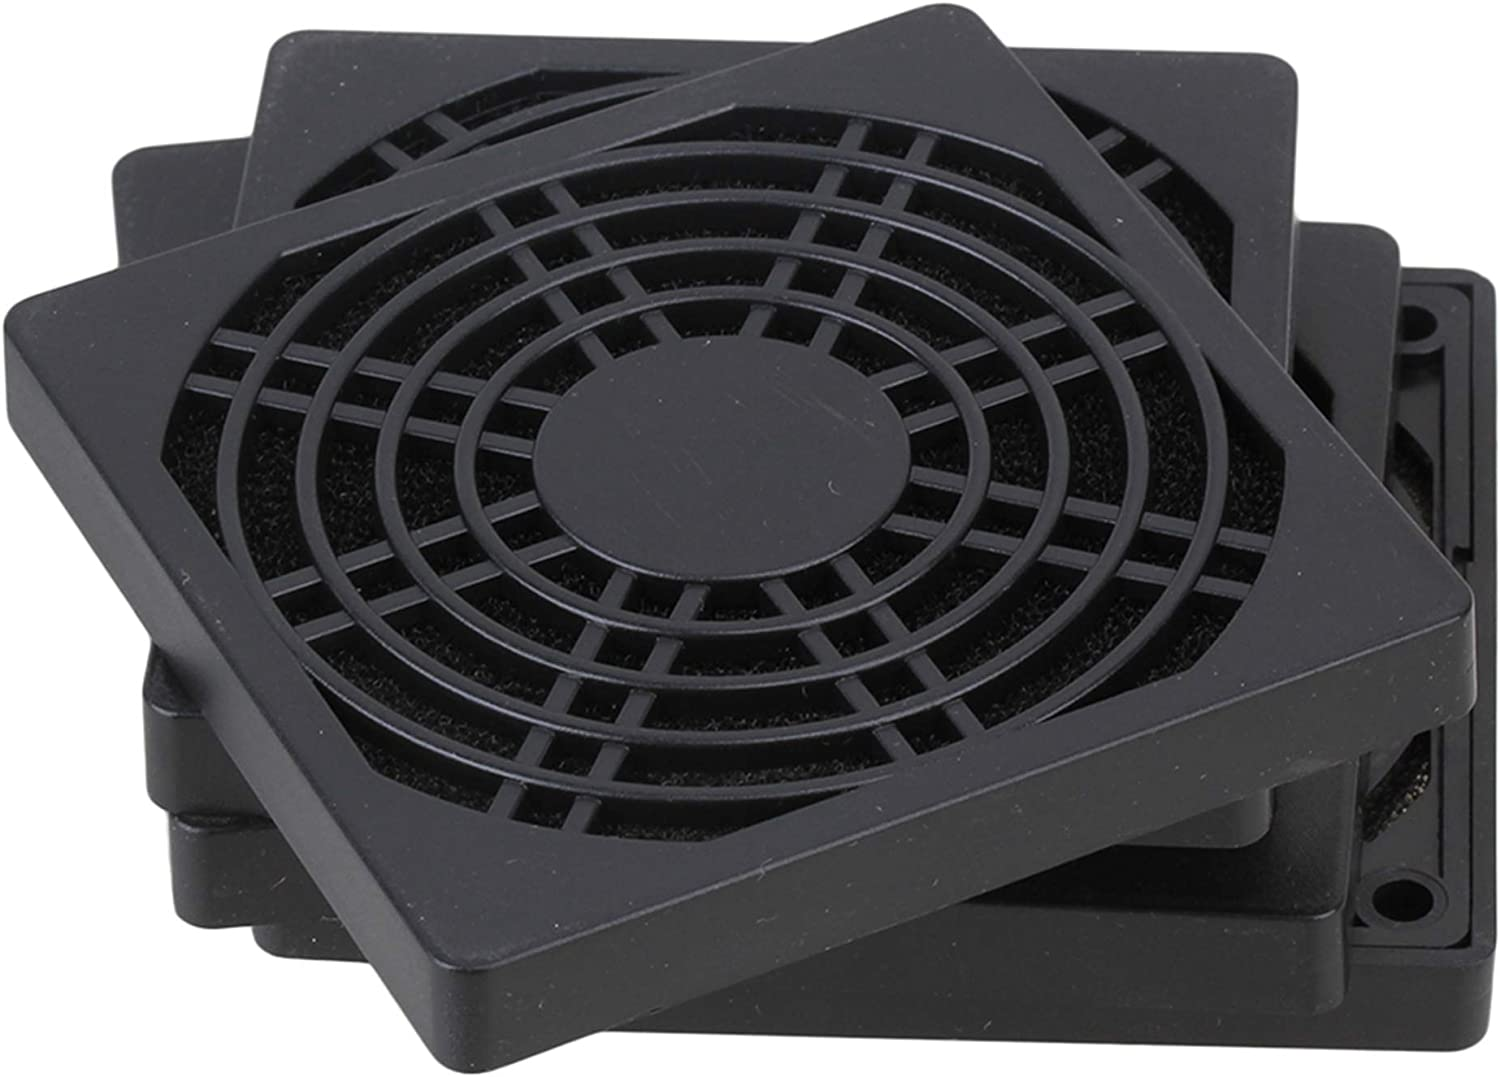 RDEXP Computer 80mm Fan Protector Filter Grill Pack of 5